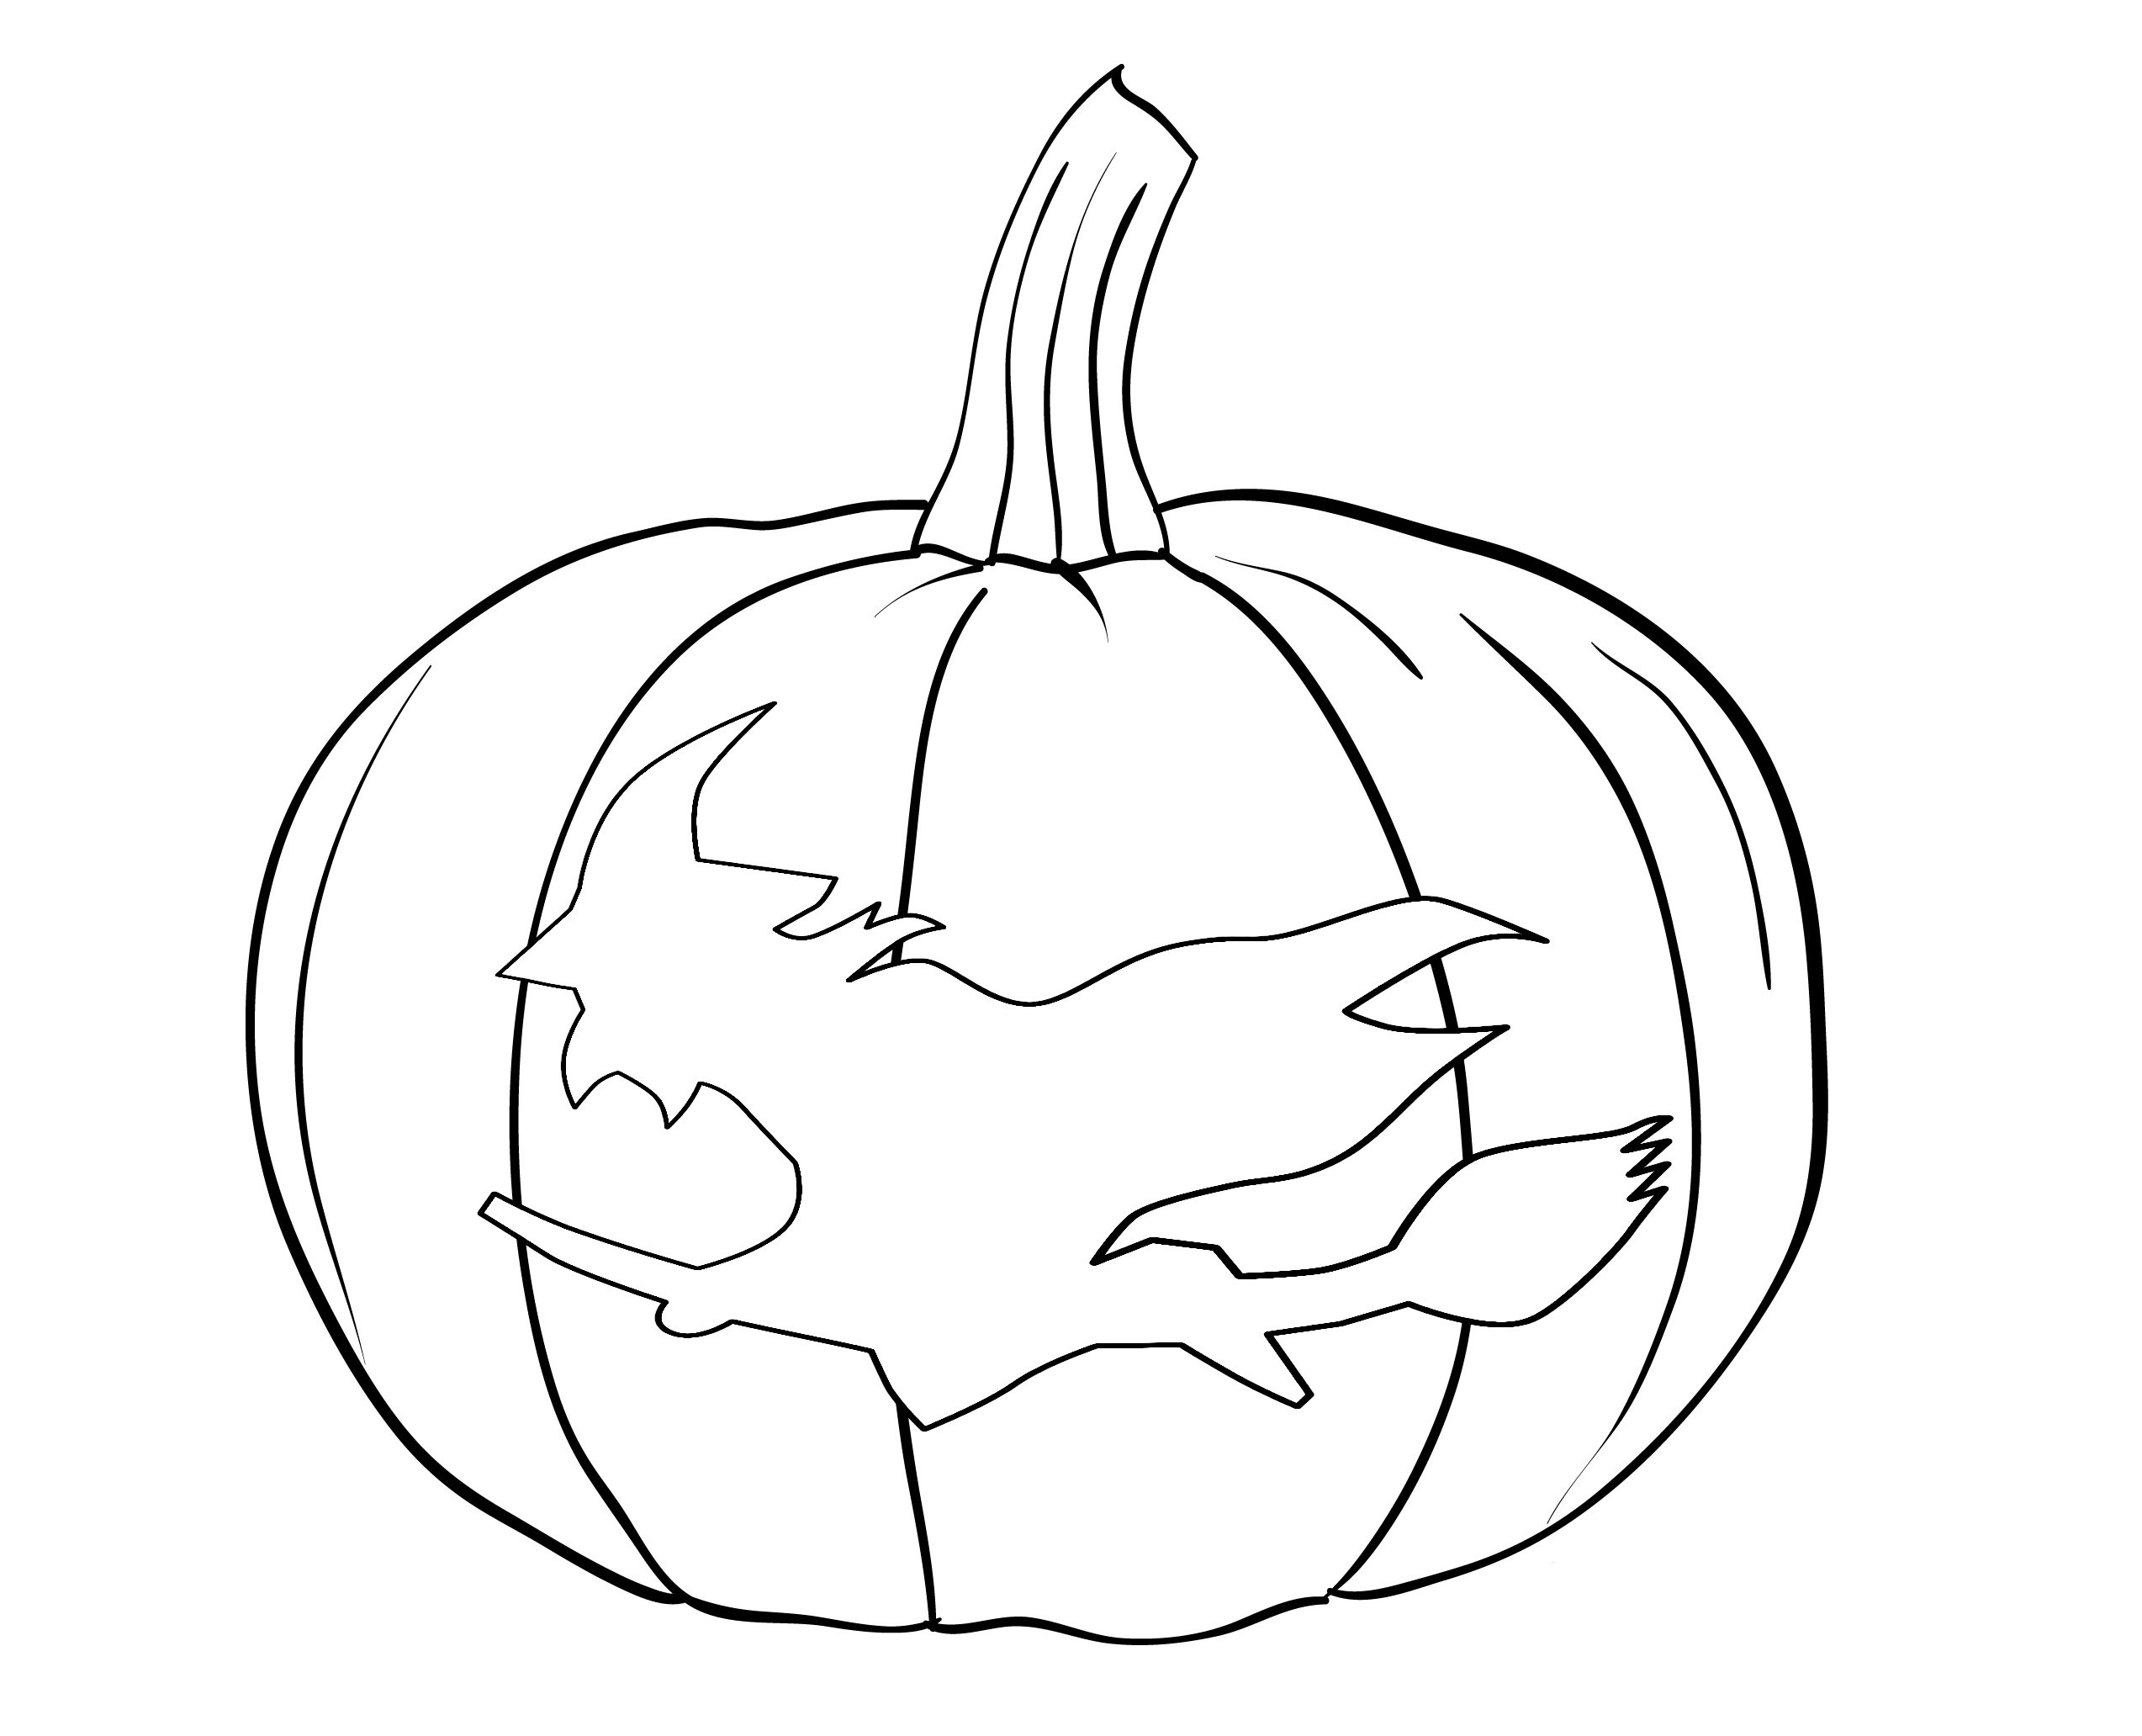 printable pumpkin coloring pages pumpkins coloring pages to celebrate thanksgiving learn printable coloring pumpkin pages